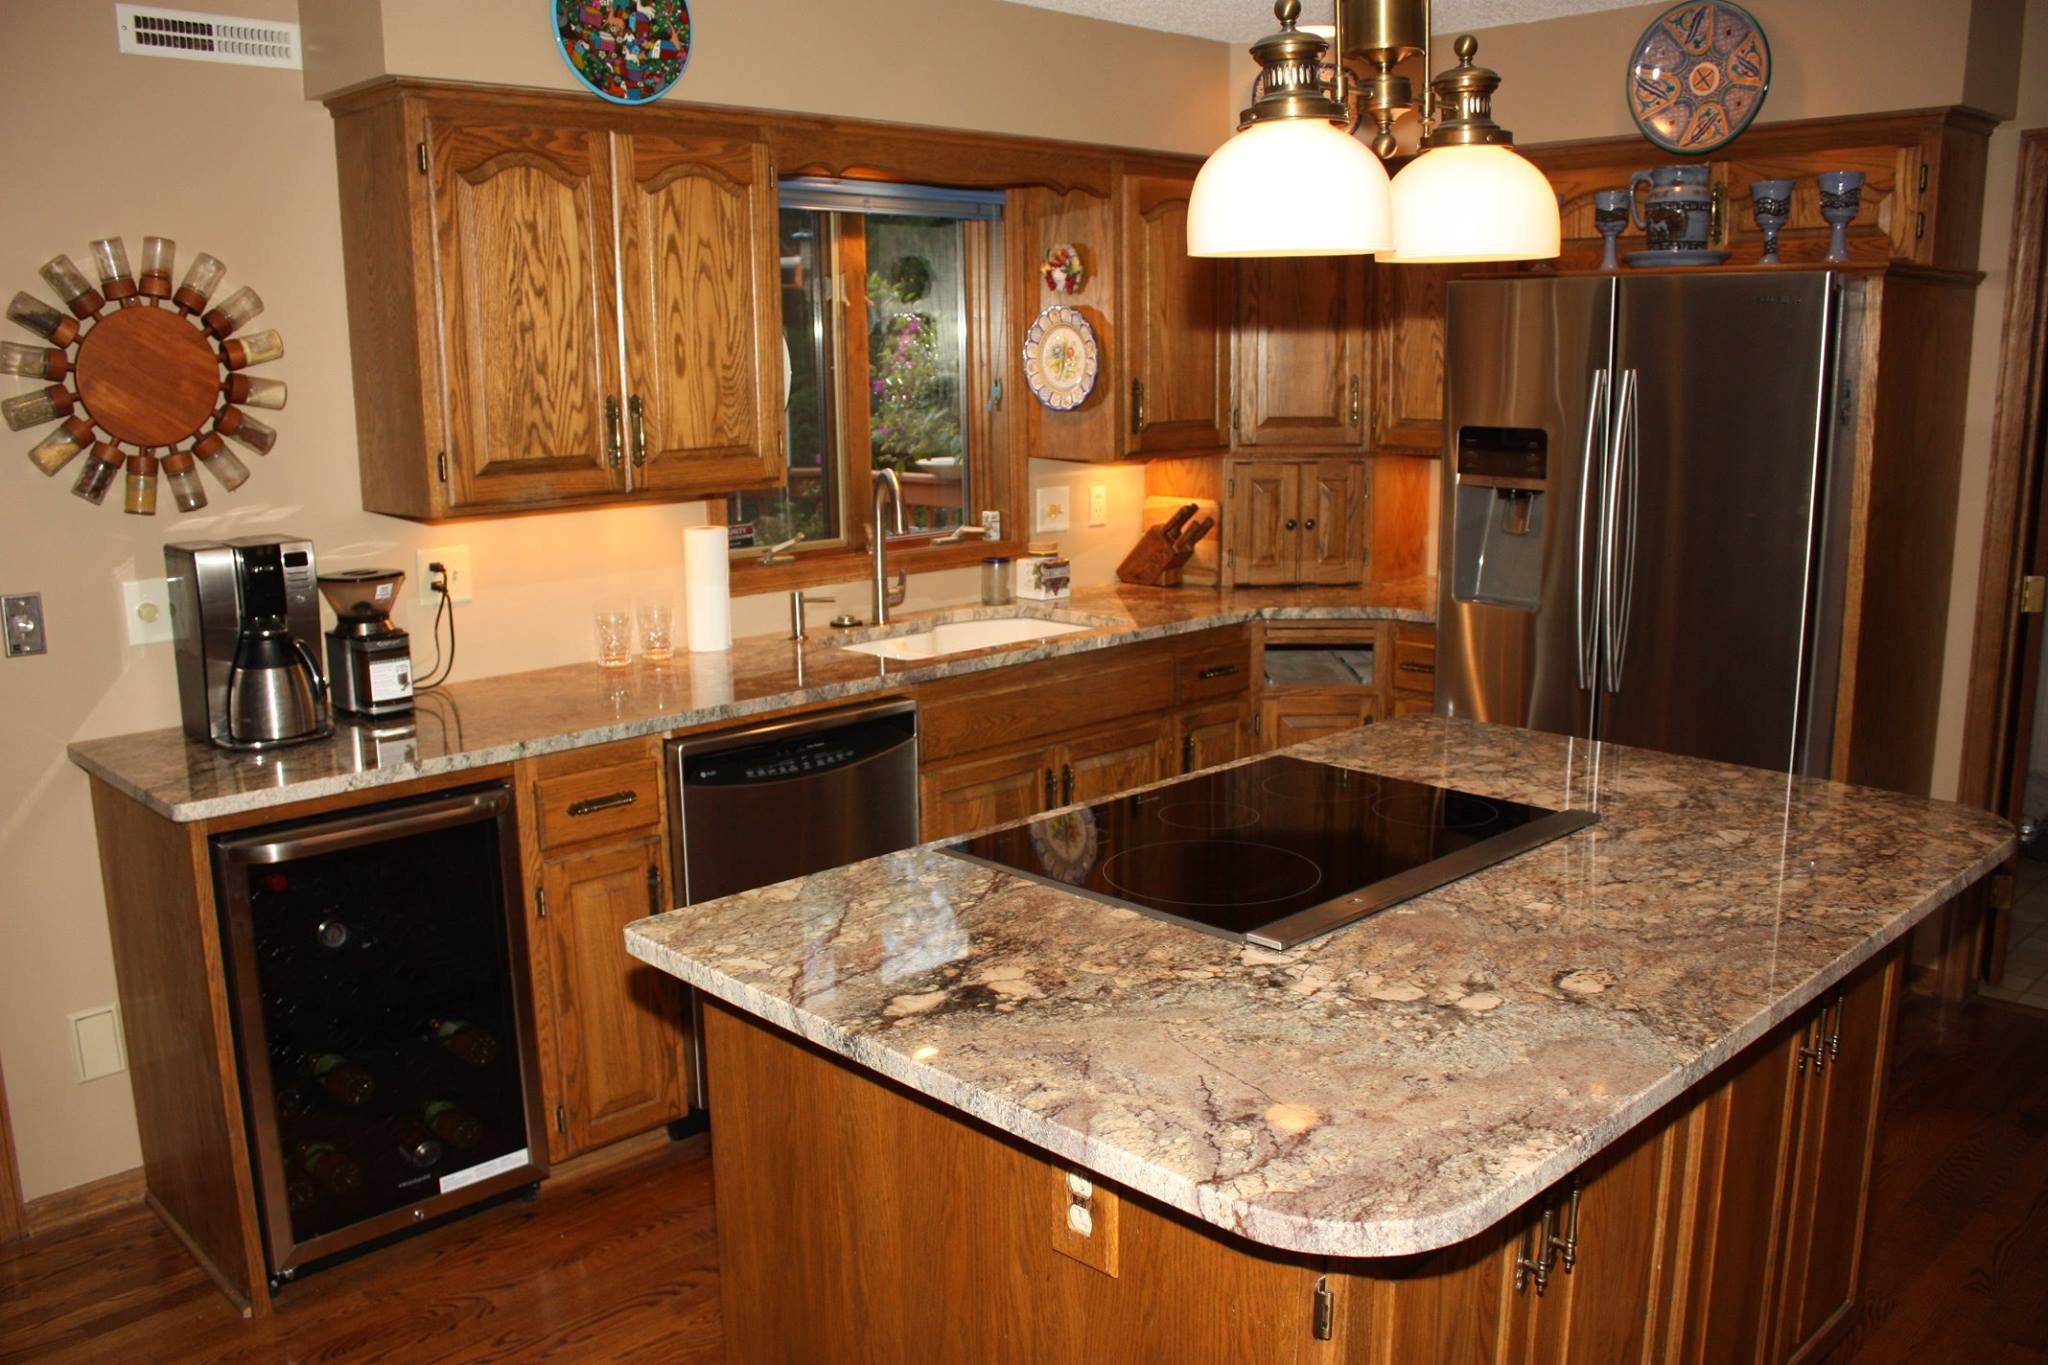 New Countertops In Kitchen Remodel C Amp D Granite Countertops